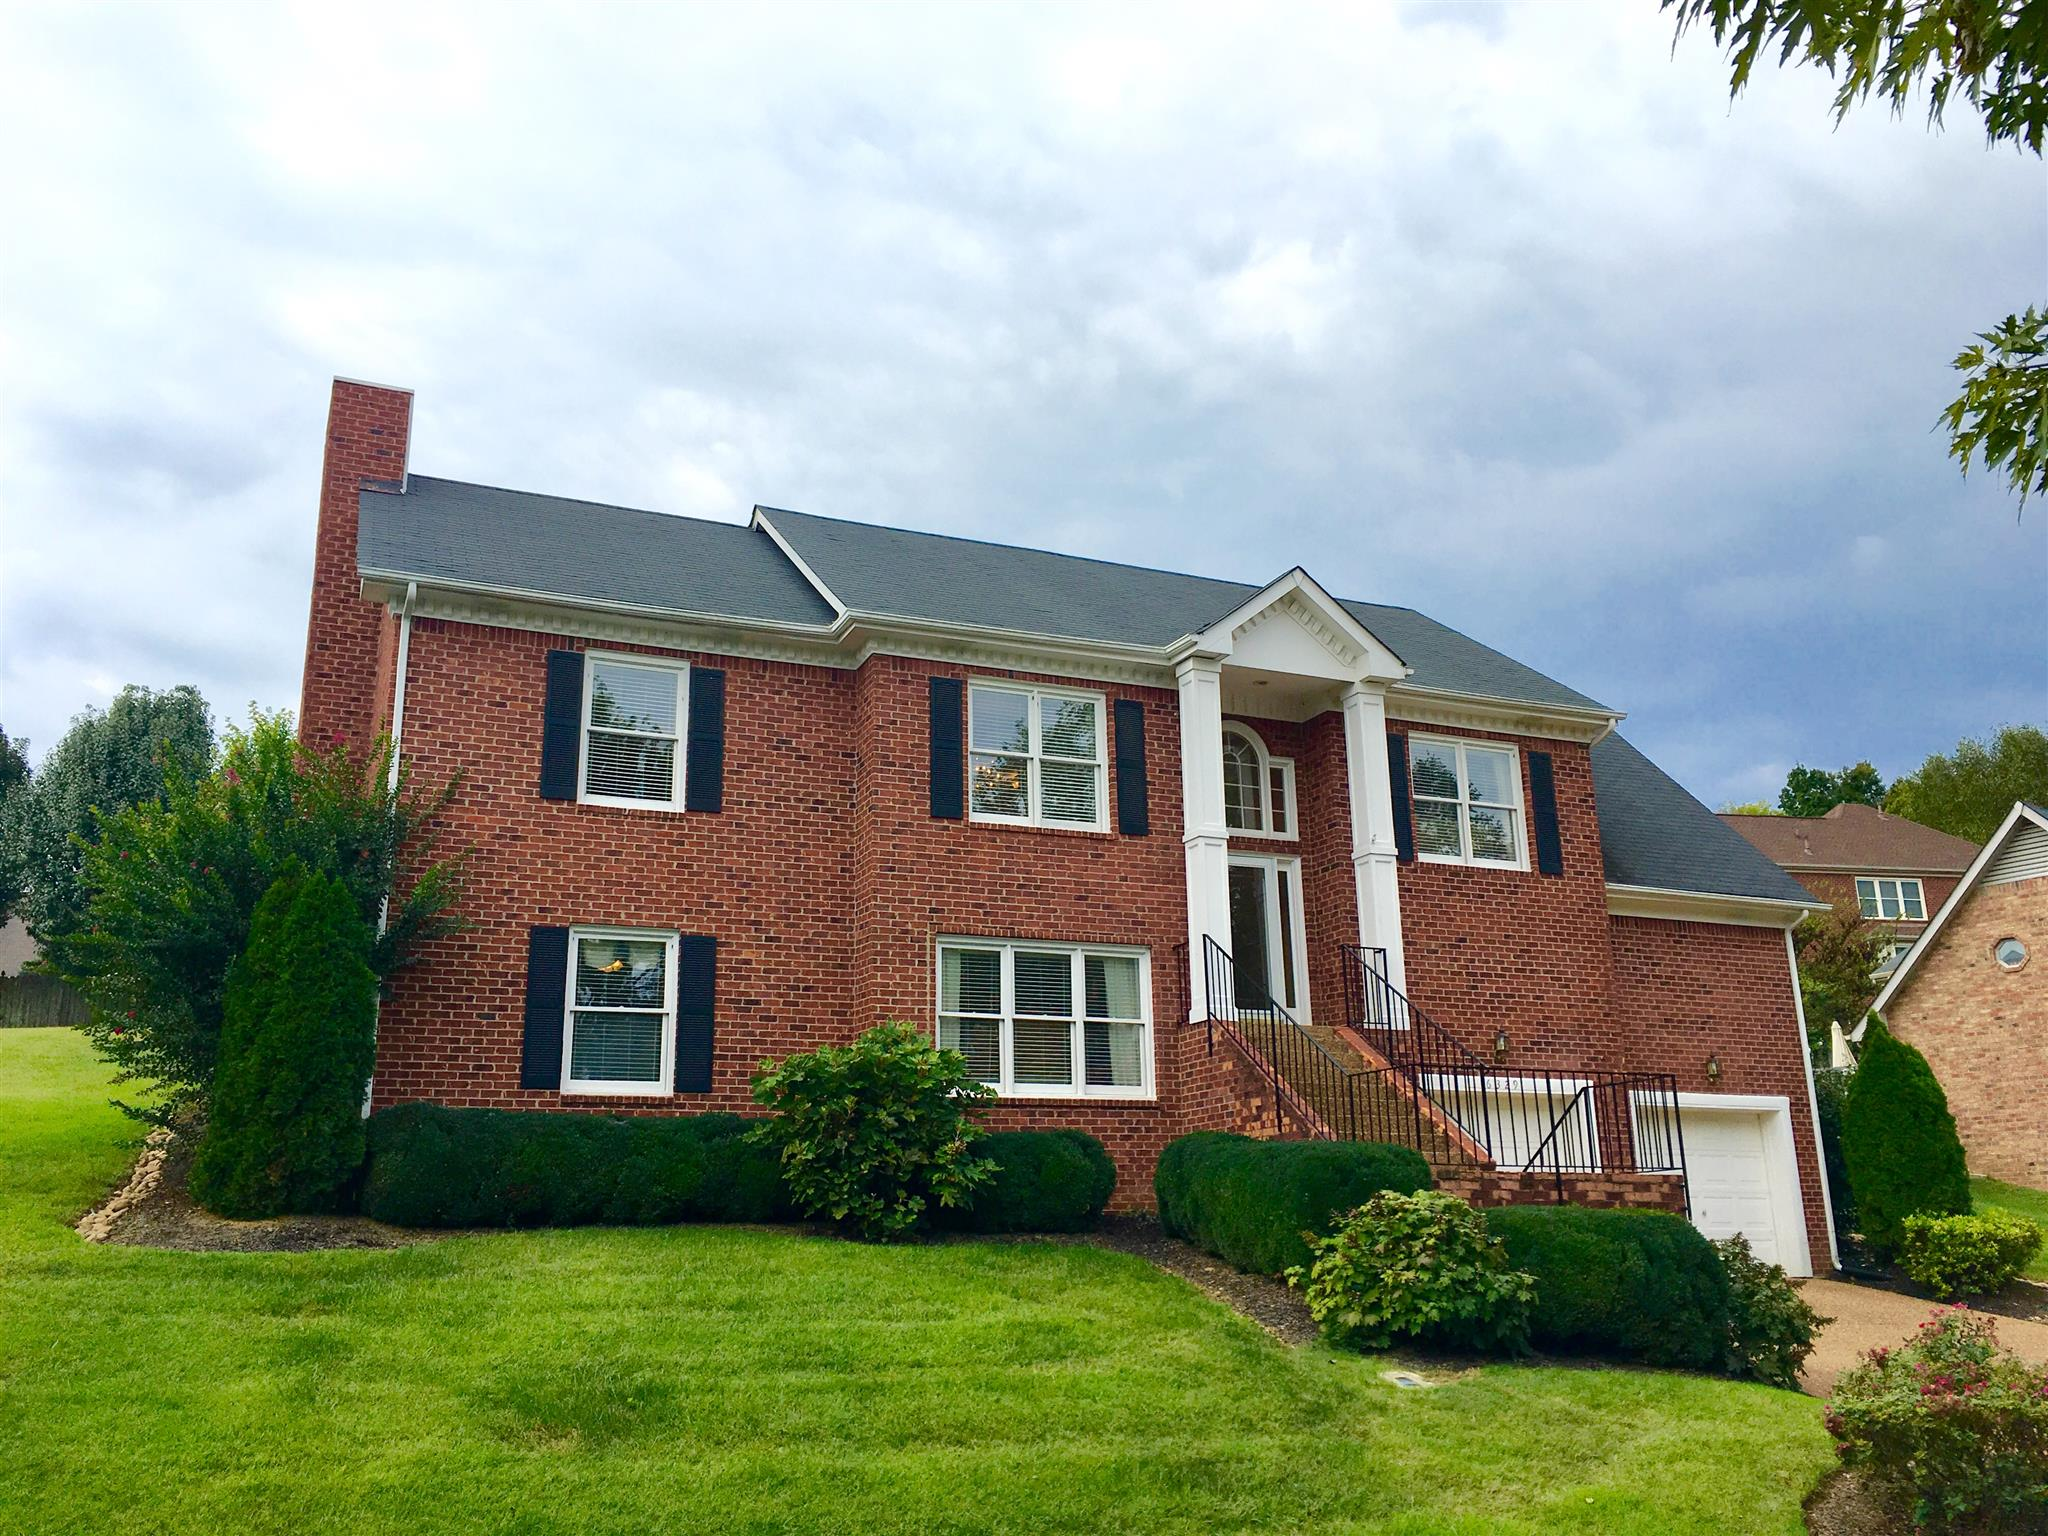 6329 Sweetgum Lane, Bellevue in Davidson County County, TN 37221 Home for Sale